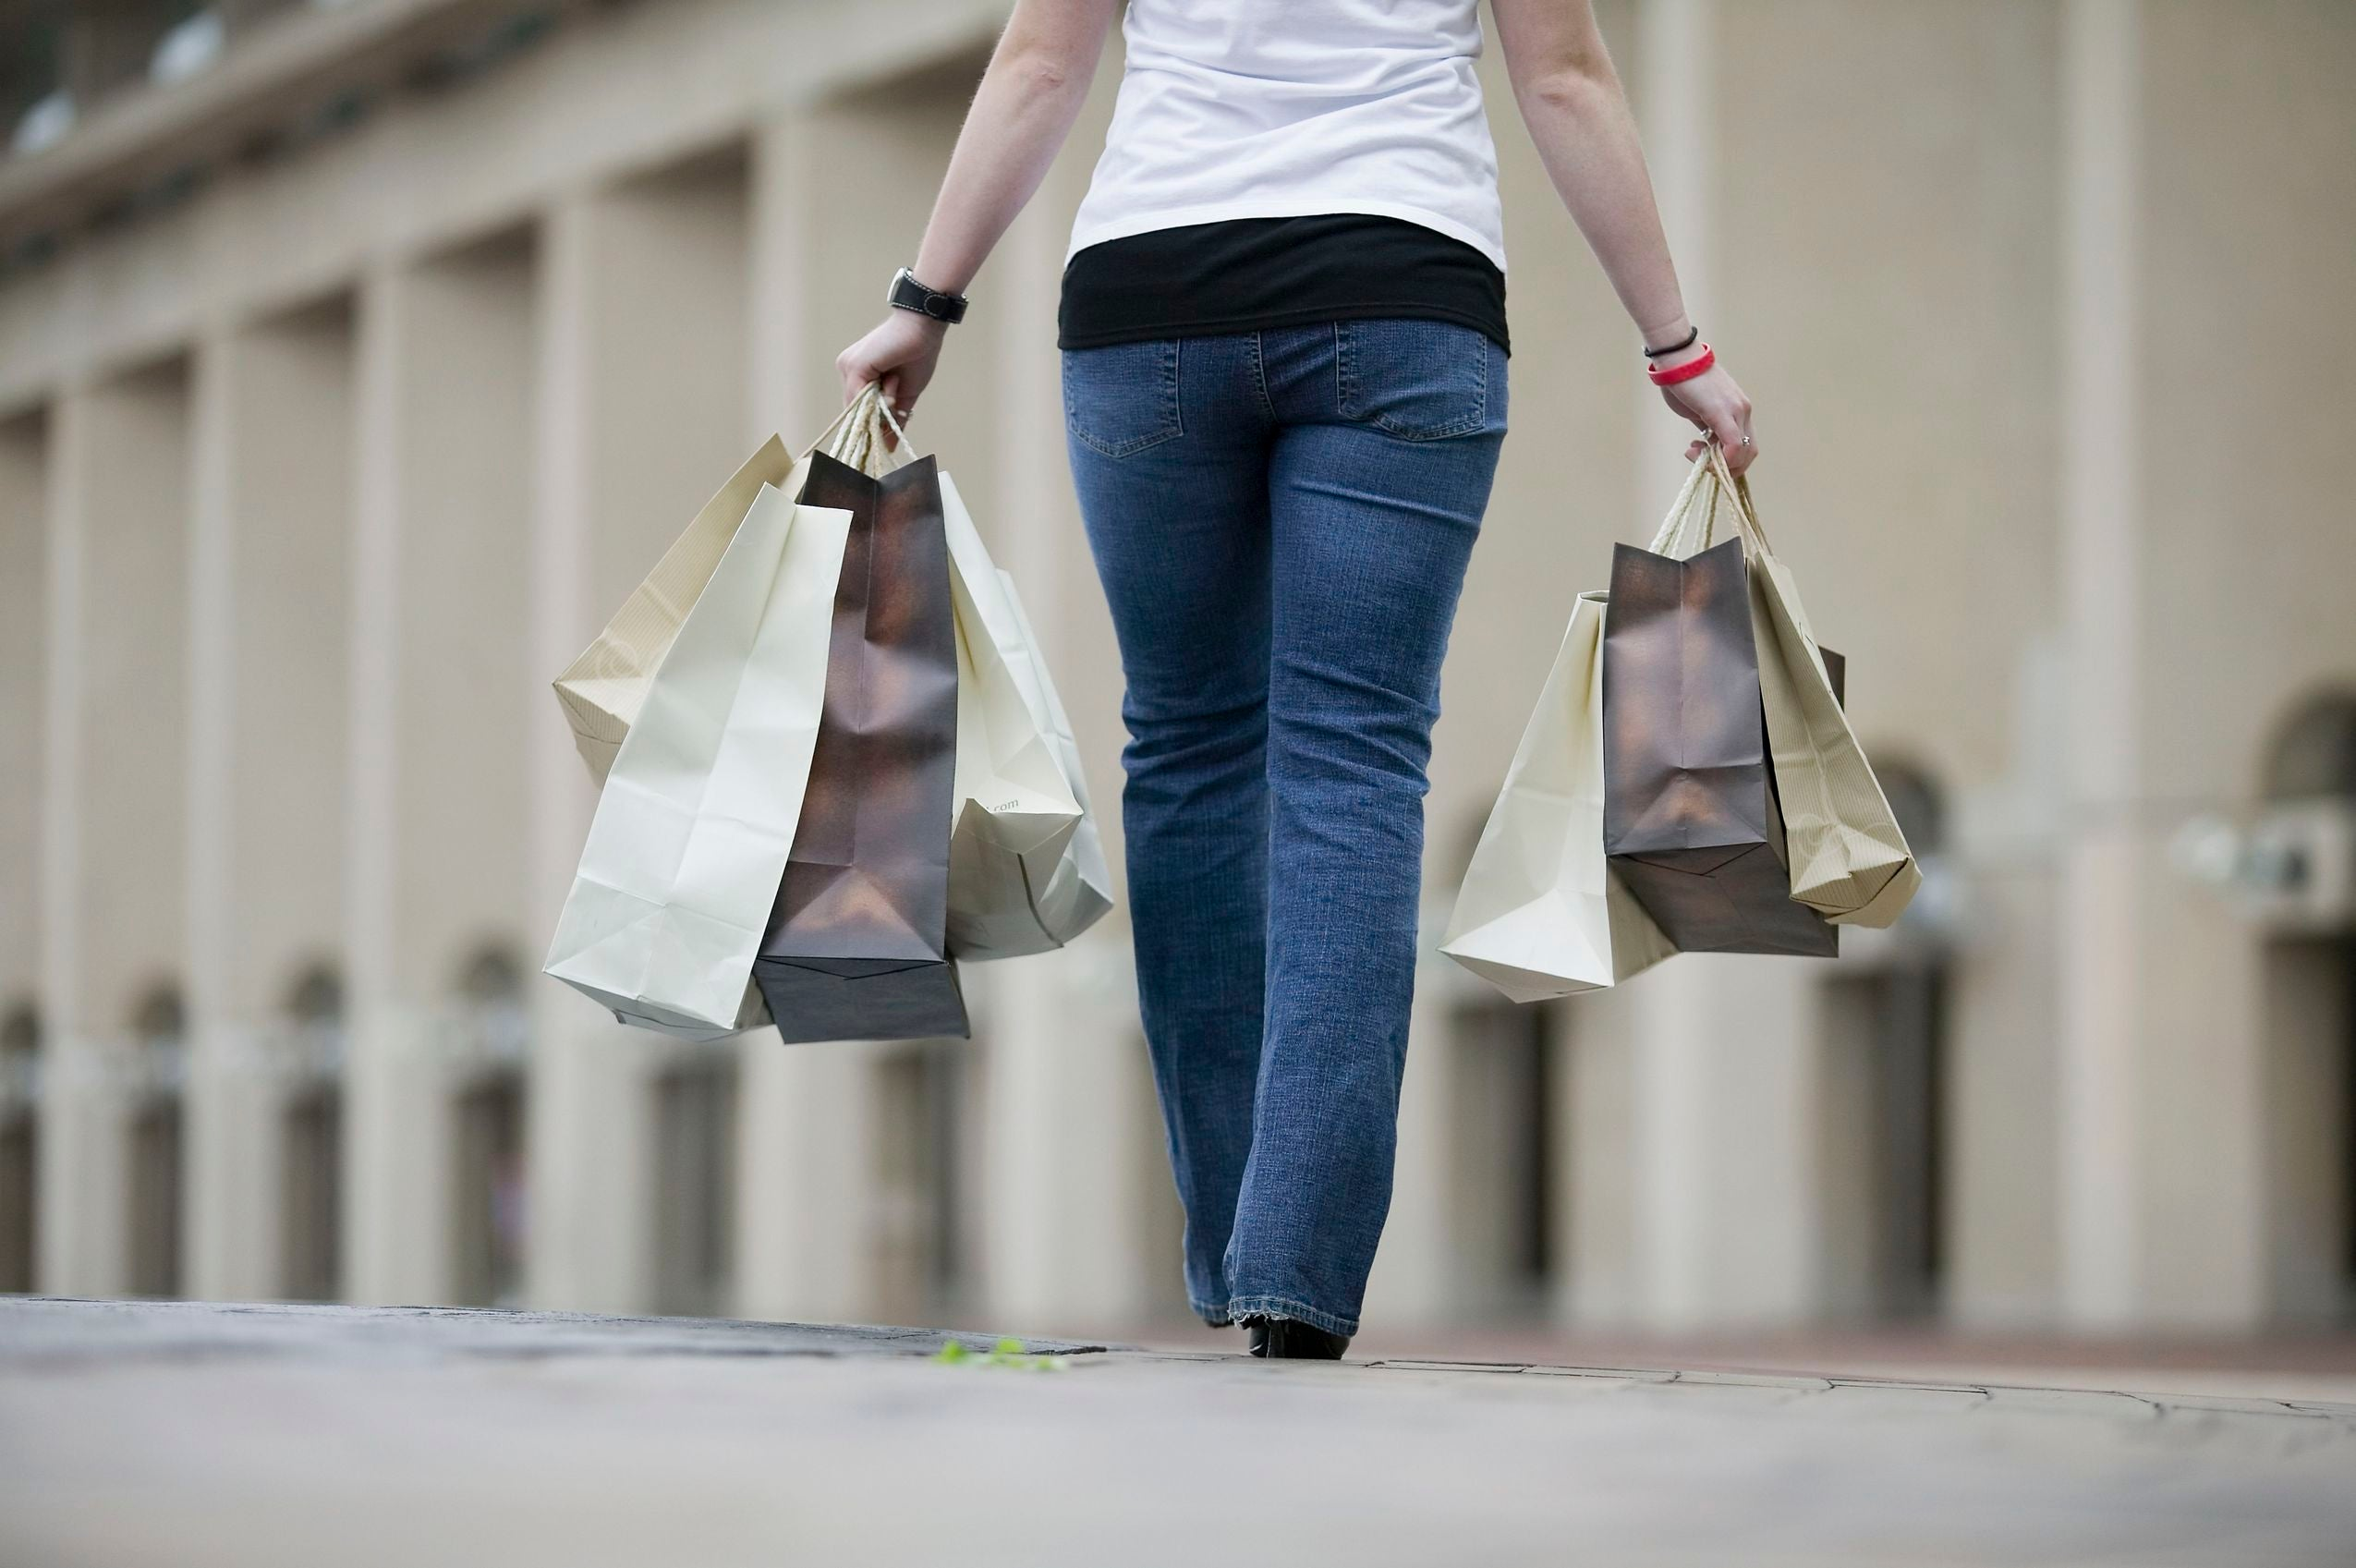 Science Confirms the Obvious: Shopping While Sad Increases Spending